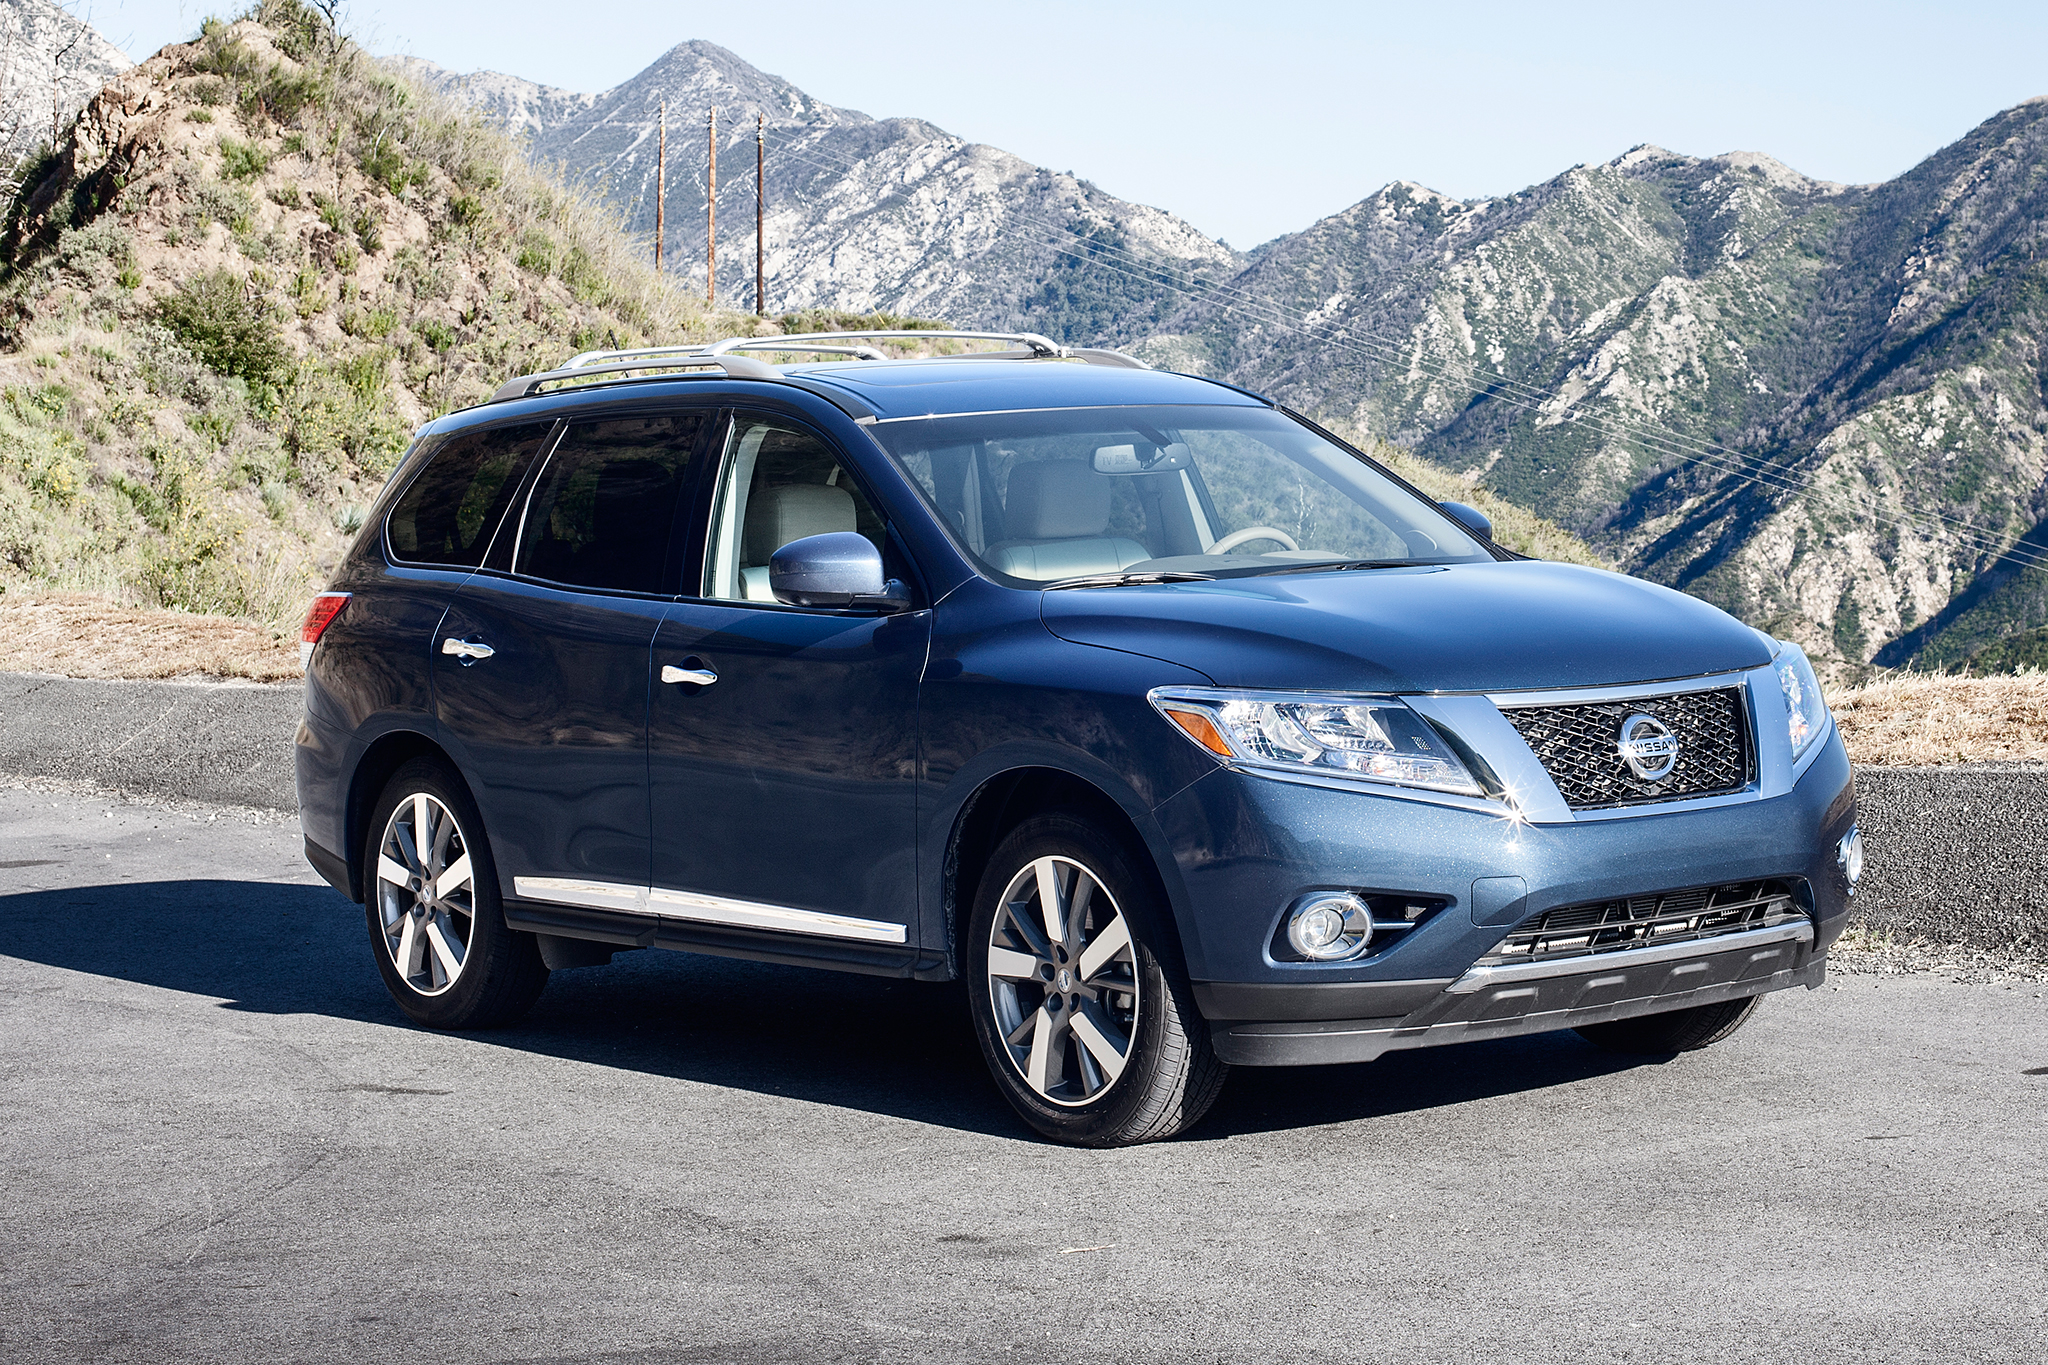 2013 Nissan Pathfinder Platinum Long Term Update 2